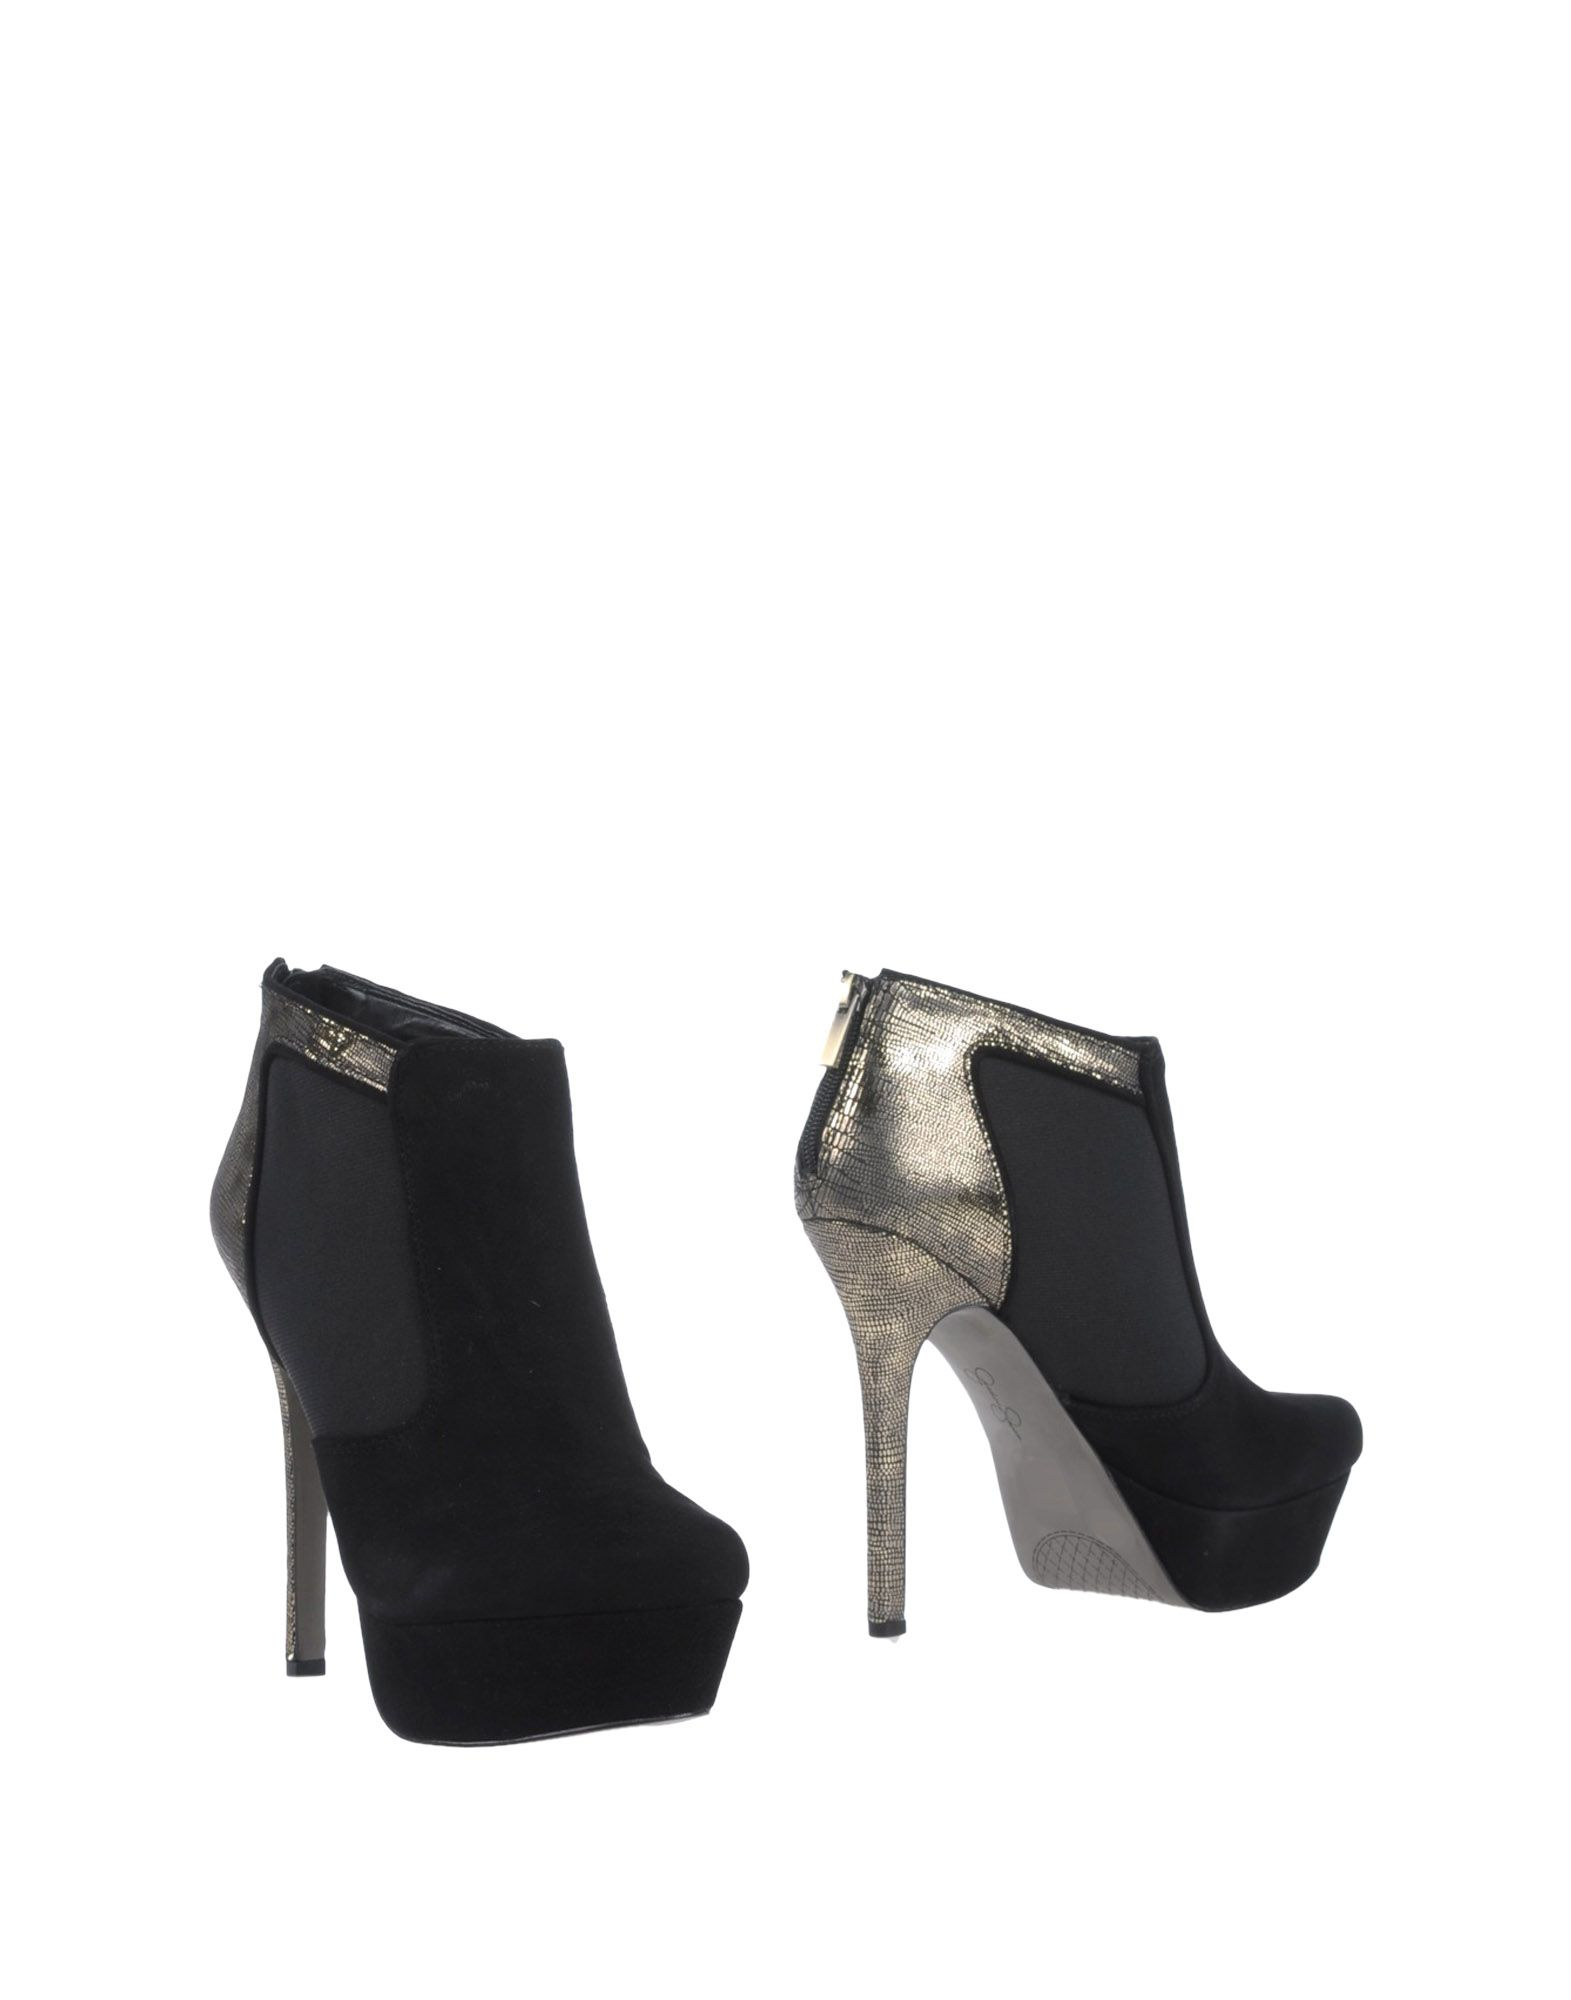 Bottine Jessica Simpson Femme - Bottines Jessica Simpson sur